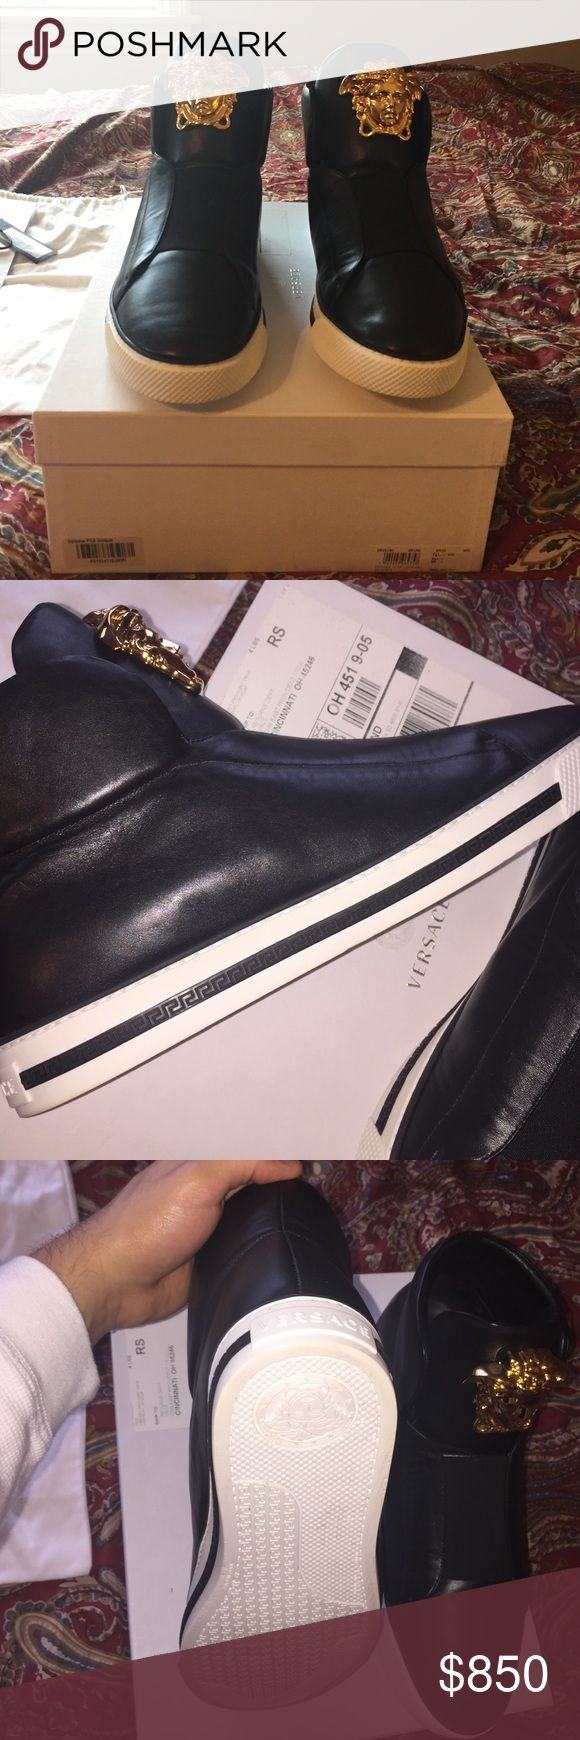 Mens Versace sneakers 12 us 45 eu Mens rare Versace sneaker with medusa gold buckle tongue. Black/ white contrast coloring with the black stripe on side they do not make no more. Size is 12 us 45 euro. 9/10 these shoes were worn once. Paid 1200. My Price I'm selling is firm. No trades Versace Shoes Sneakers